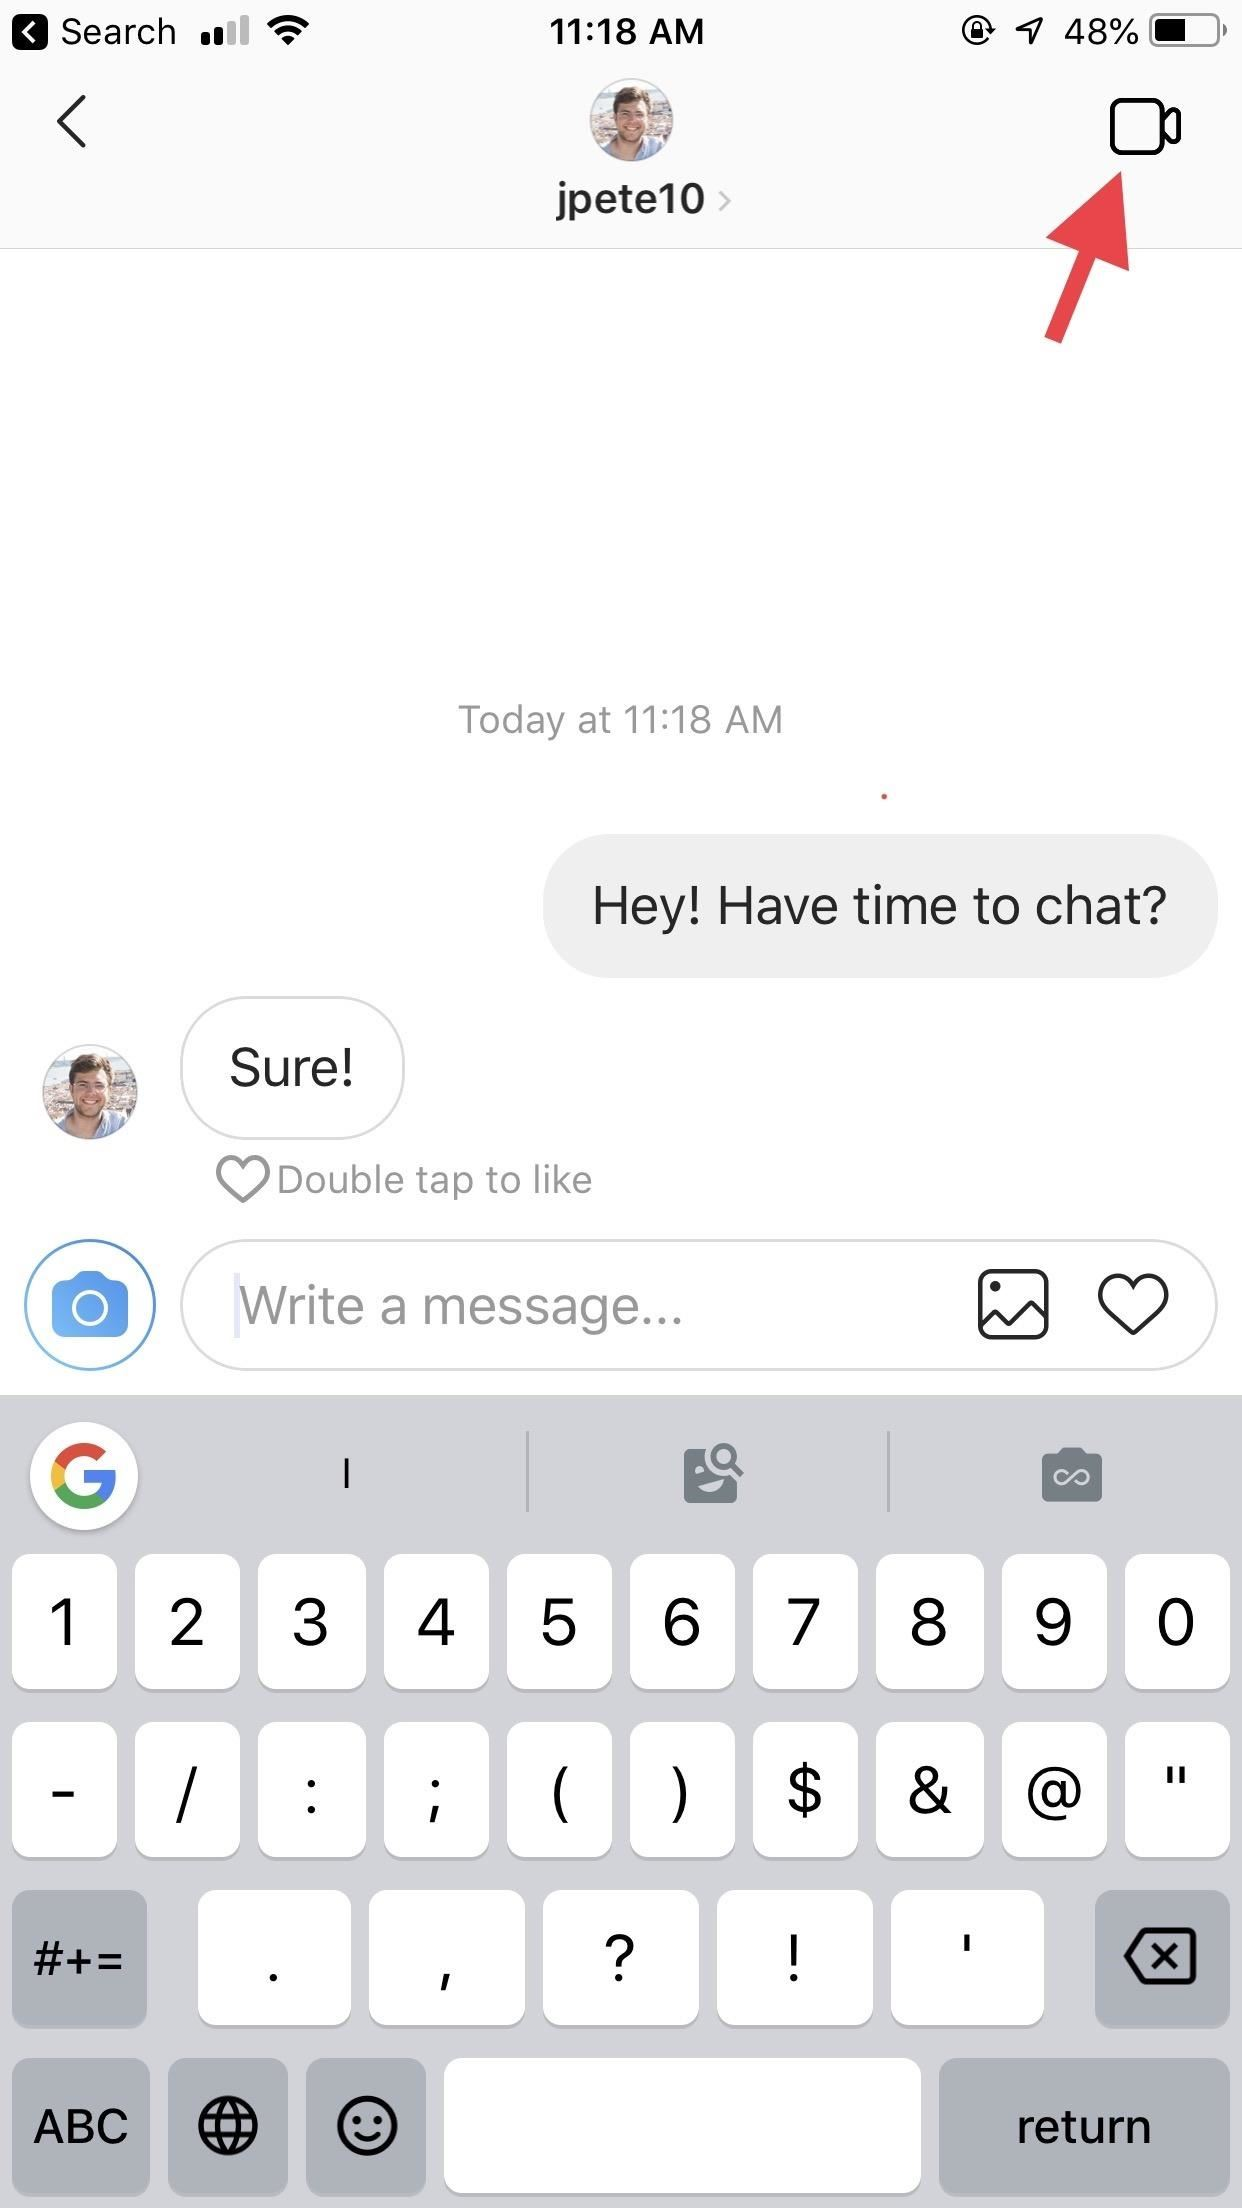 How to Chat Directly with One or More Users in Instagram for Quick Calls